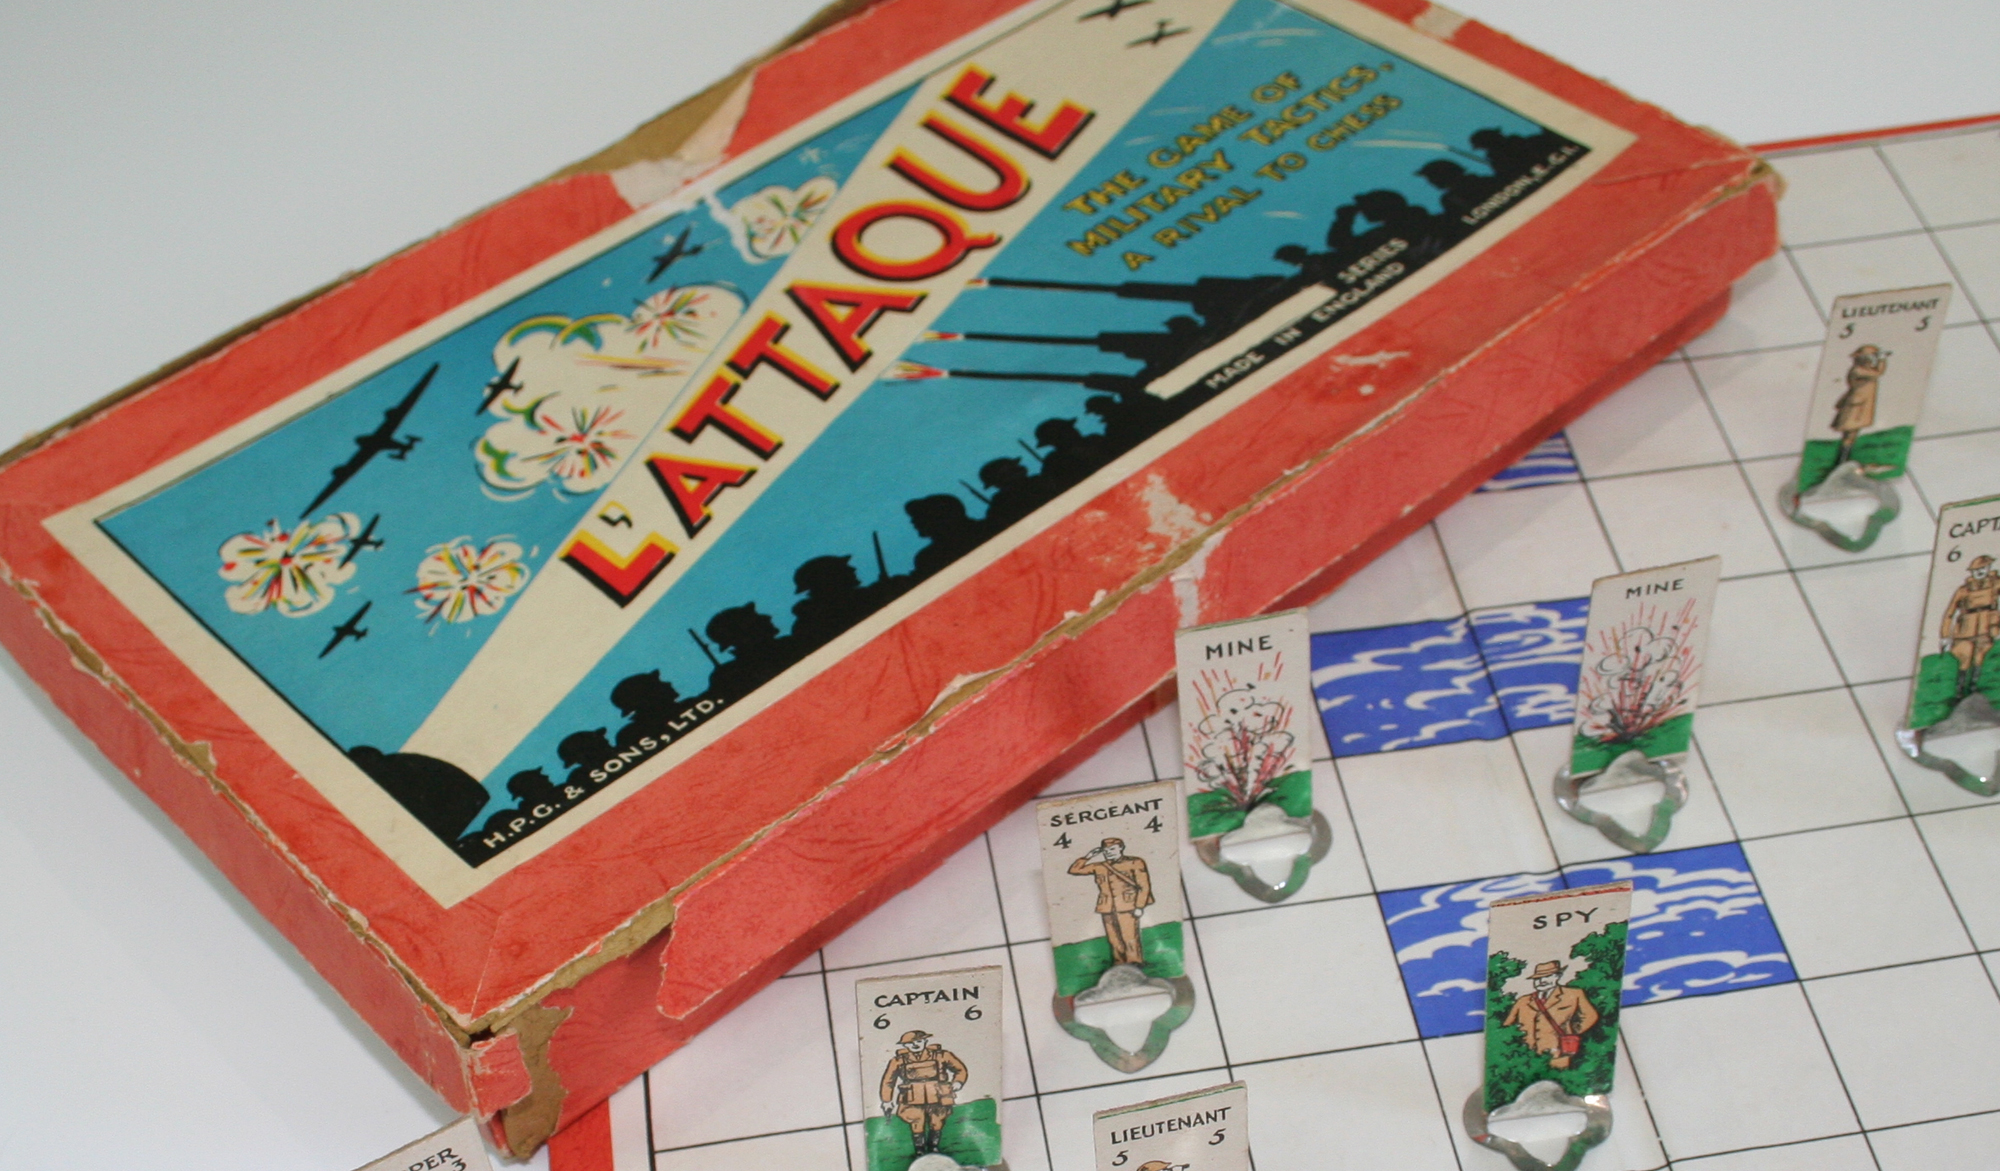 L'Attaque board game